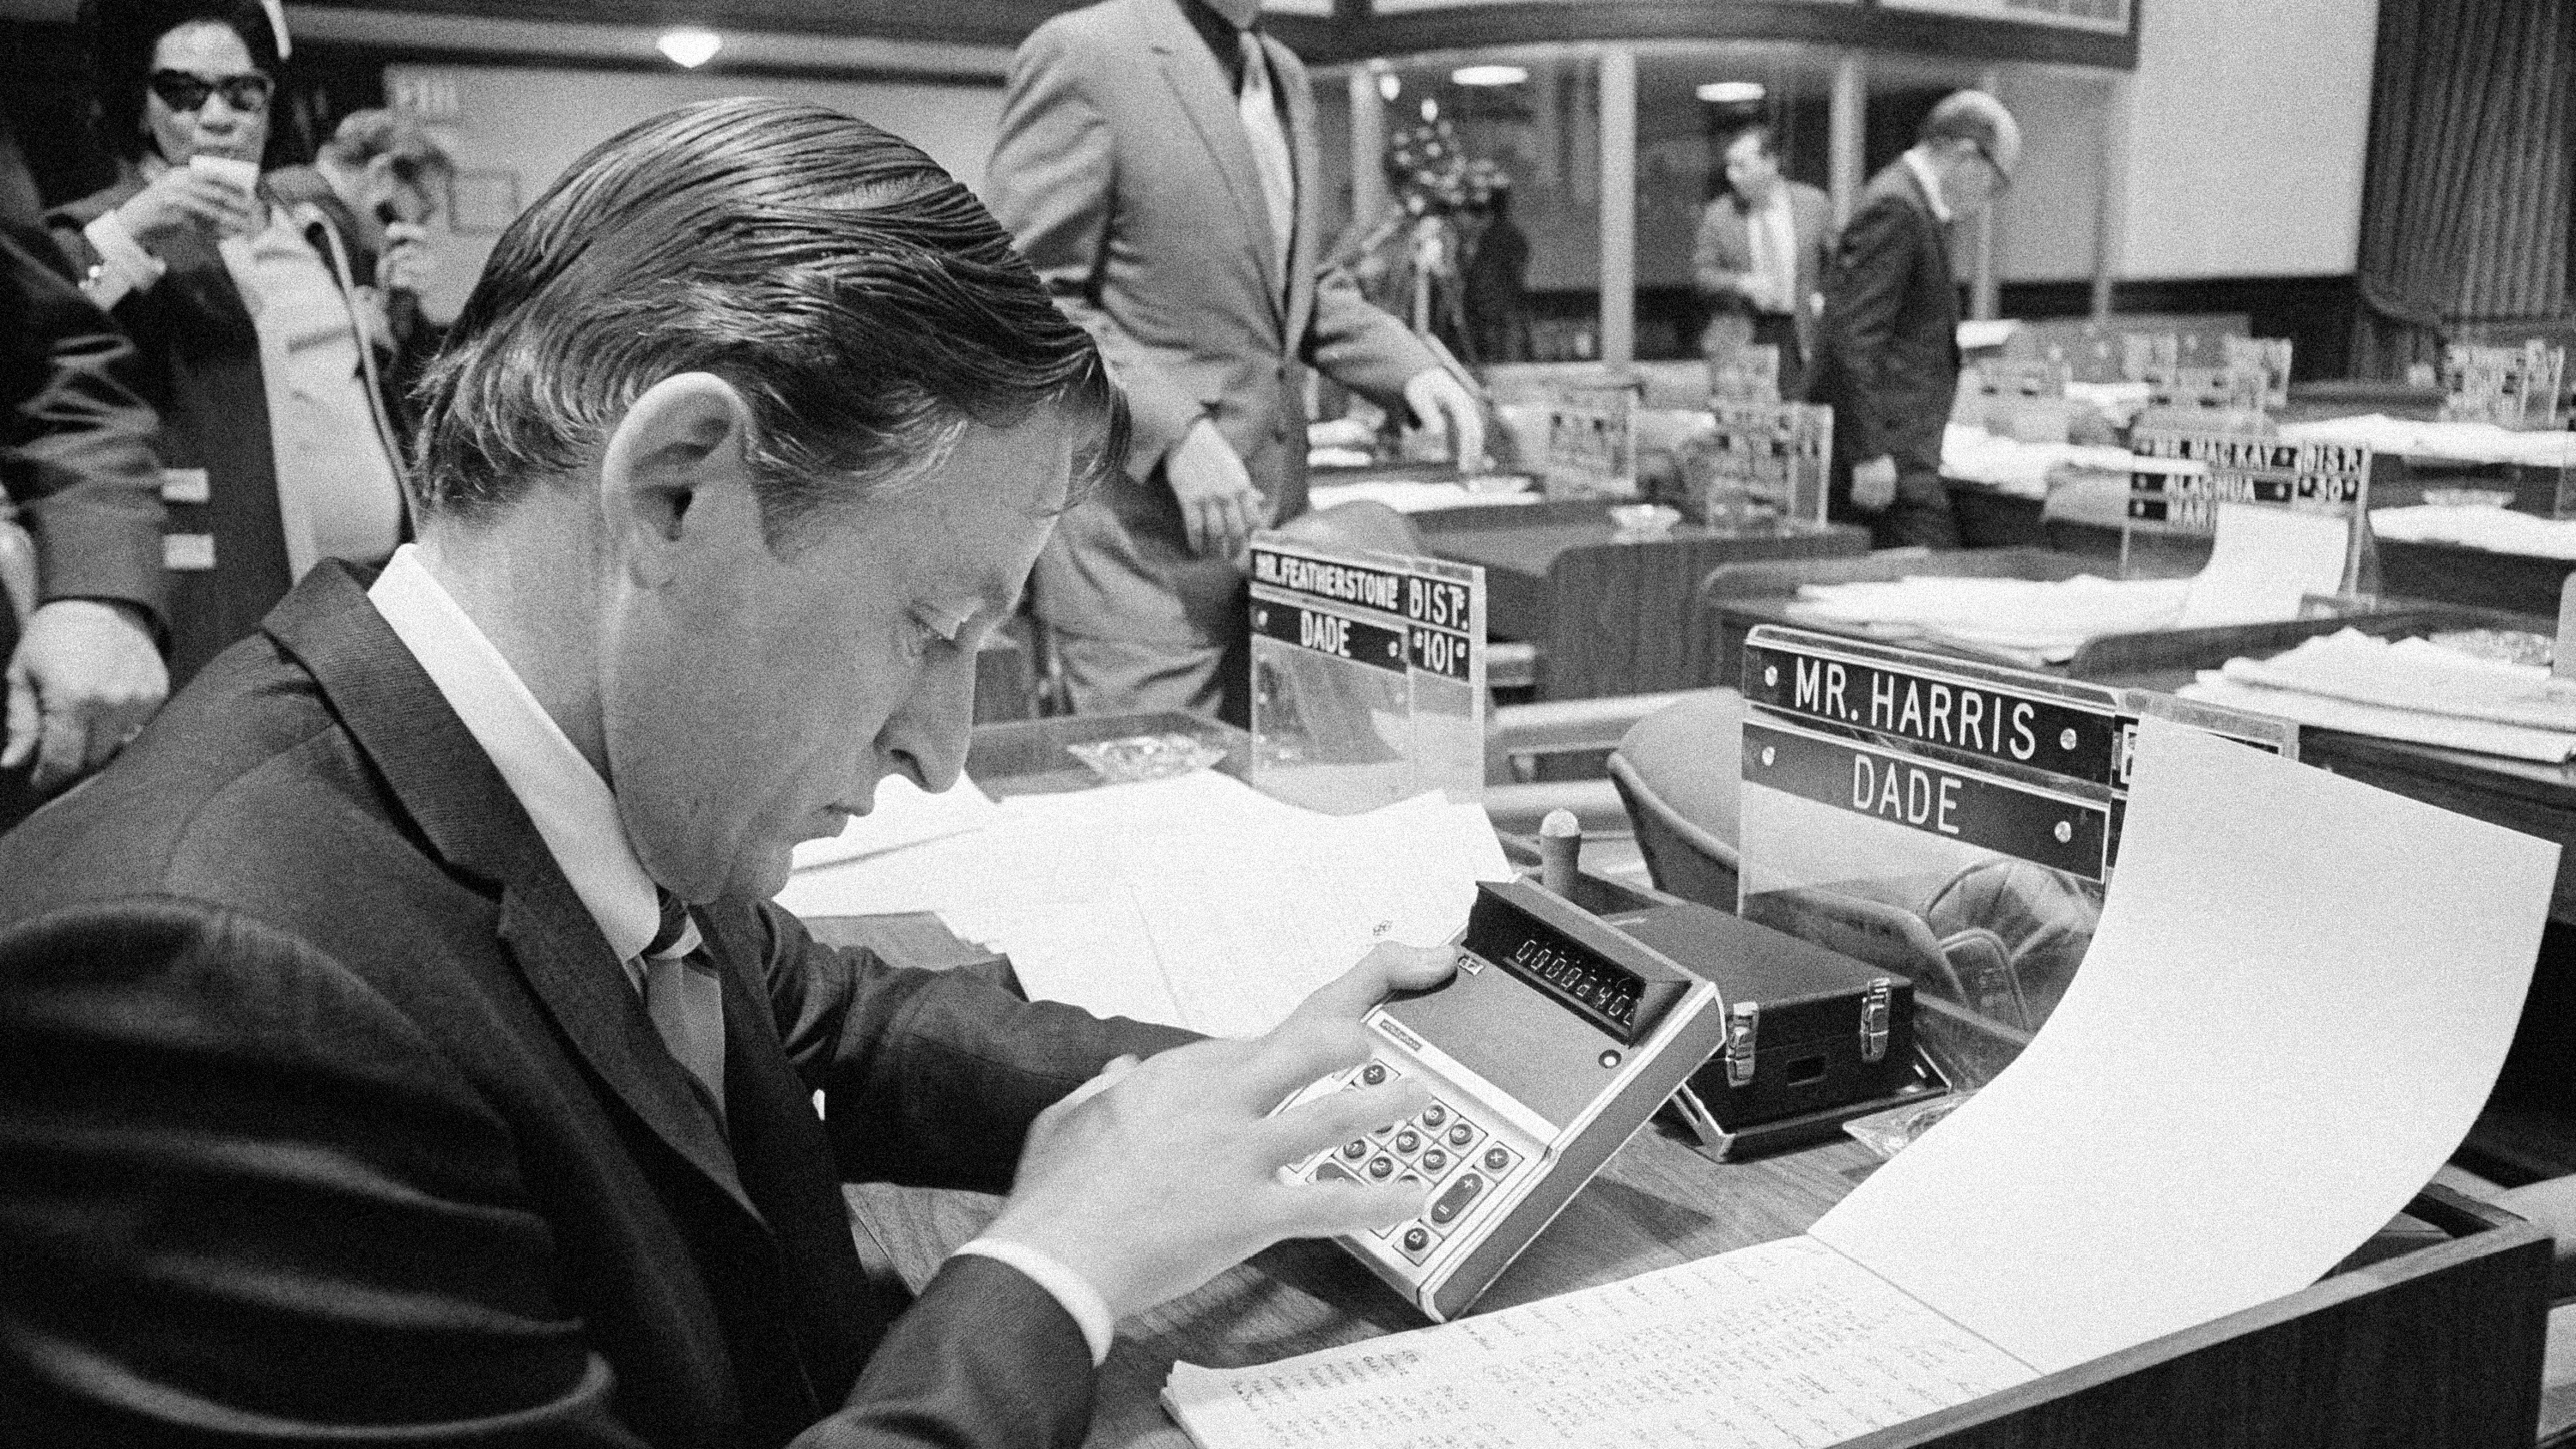 Dade County Rep. Marshall Harris, D-Miami, Fla., uses a small electronic calculator as he computes figures during discussion on the house floor on proposed insurance legislation in Tallahassee, Florida  Jan. 28, 1971. The Florida lawmakers are in the state capitol for a special session, dealing with insurance matters and taxes. (AP Photo)